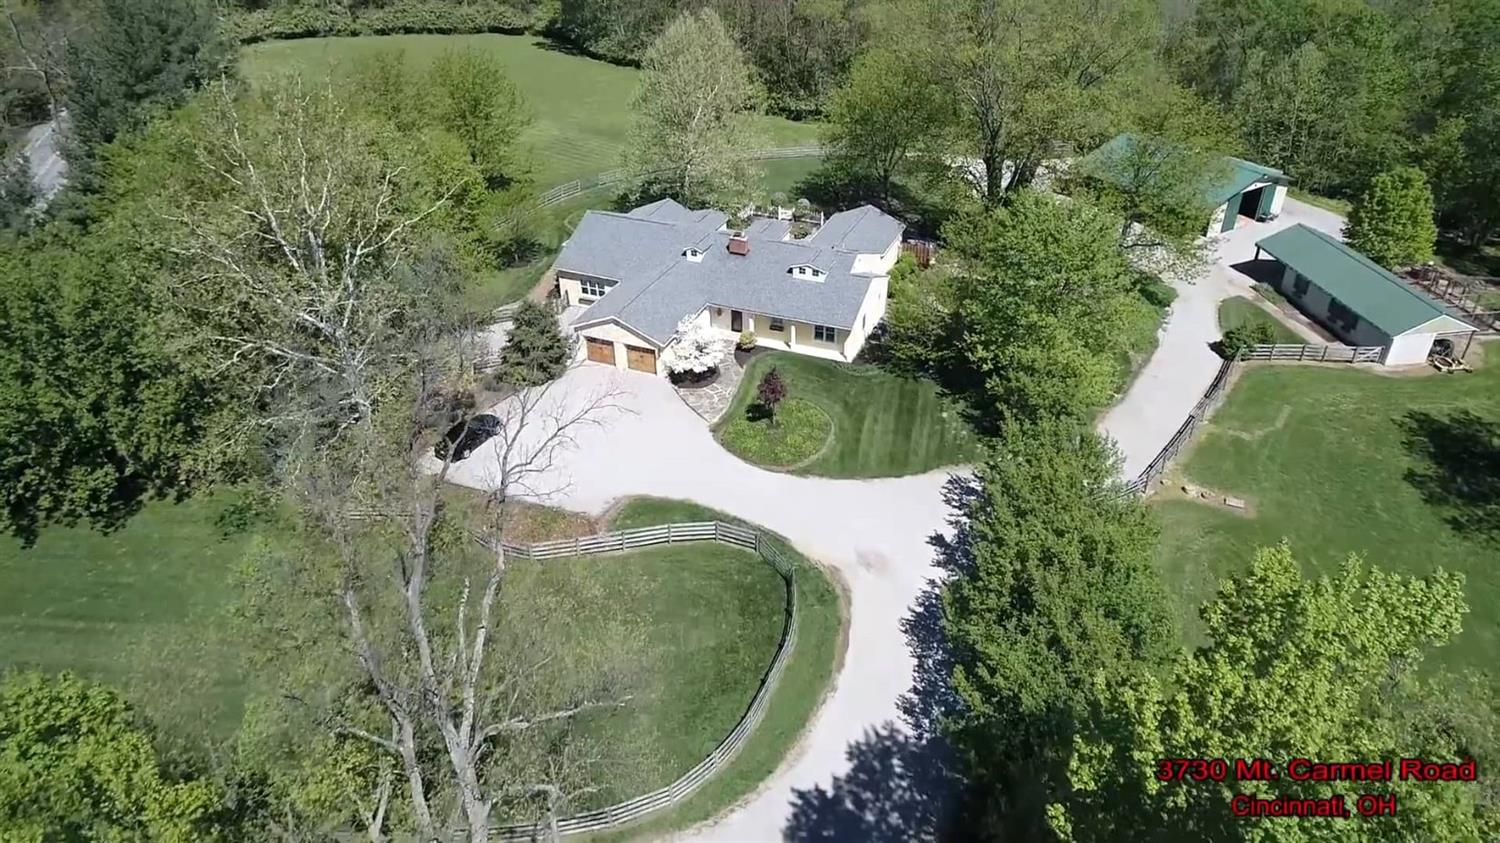 Gentlemen's farm* Tons of charm! 20 acres, 10 acres are fenced + 4 stalls + tackrm + space for 3 more w/electric/water*3 add'l stalls in original barn*New upper bonus BR/bath*Cathedral MBR*Updated bath*Newer custom kit*Amazing great room w/soaring ceilings*Distant valley views!